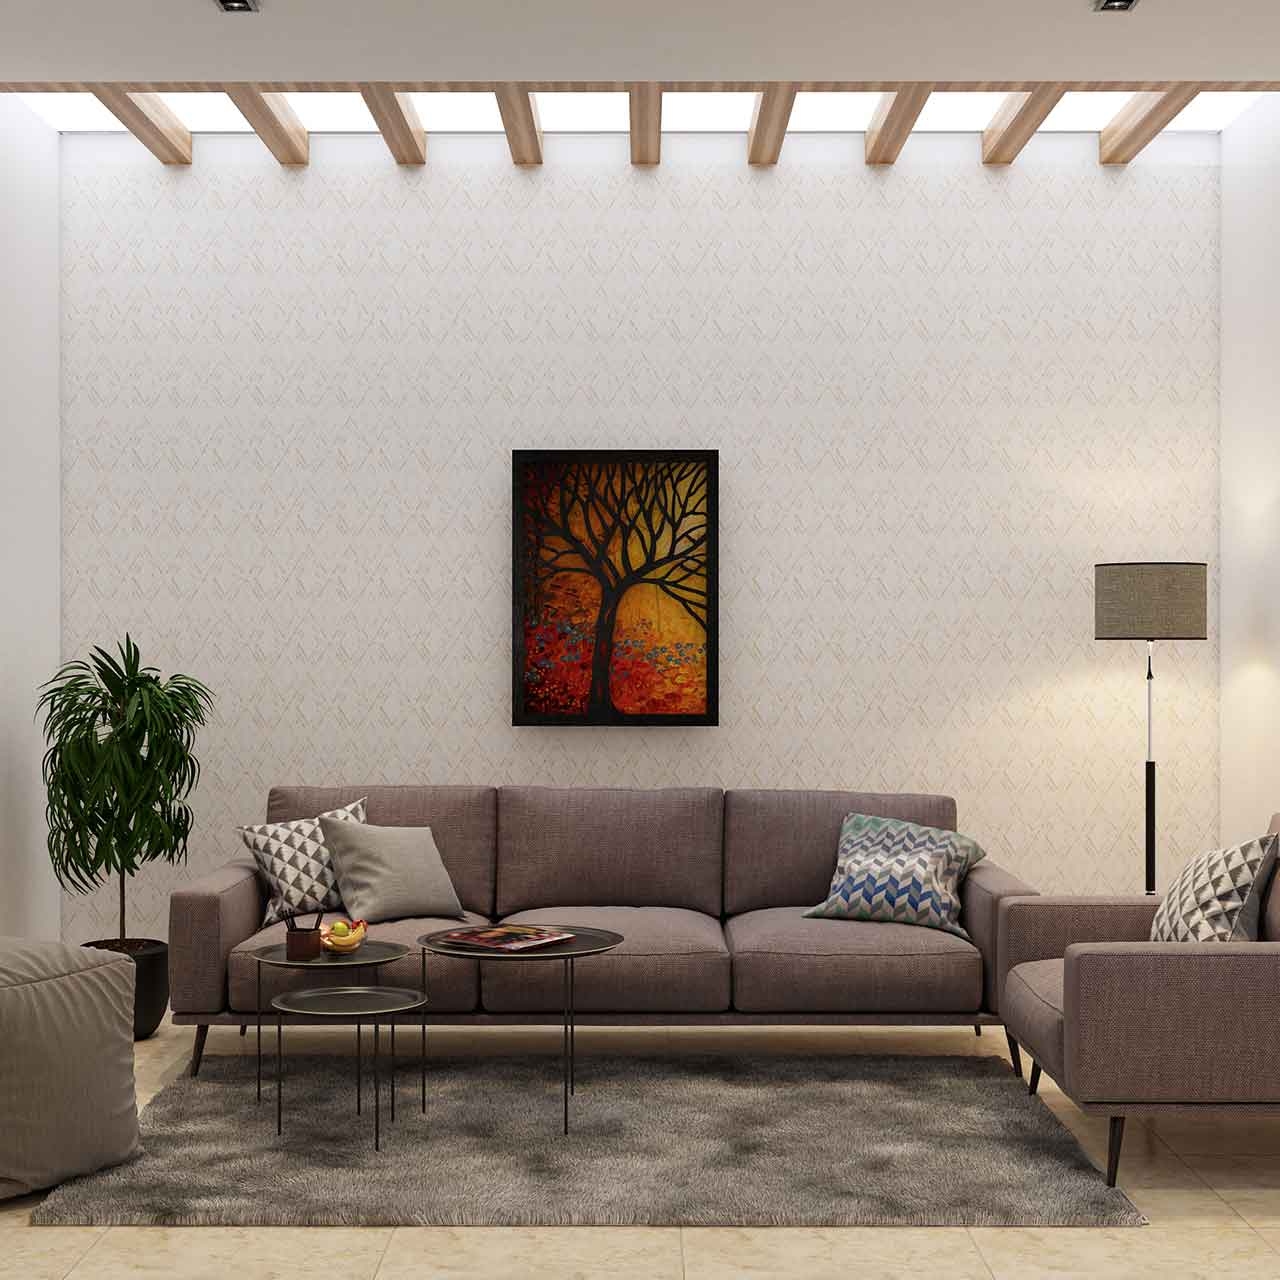 Minimalistic style living room design with a clean, calm, space without being bored, minimalism calls for a clutter-free space